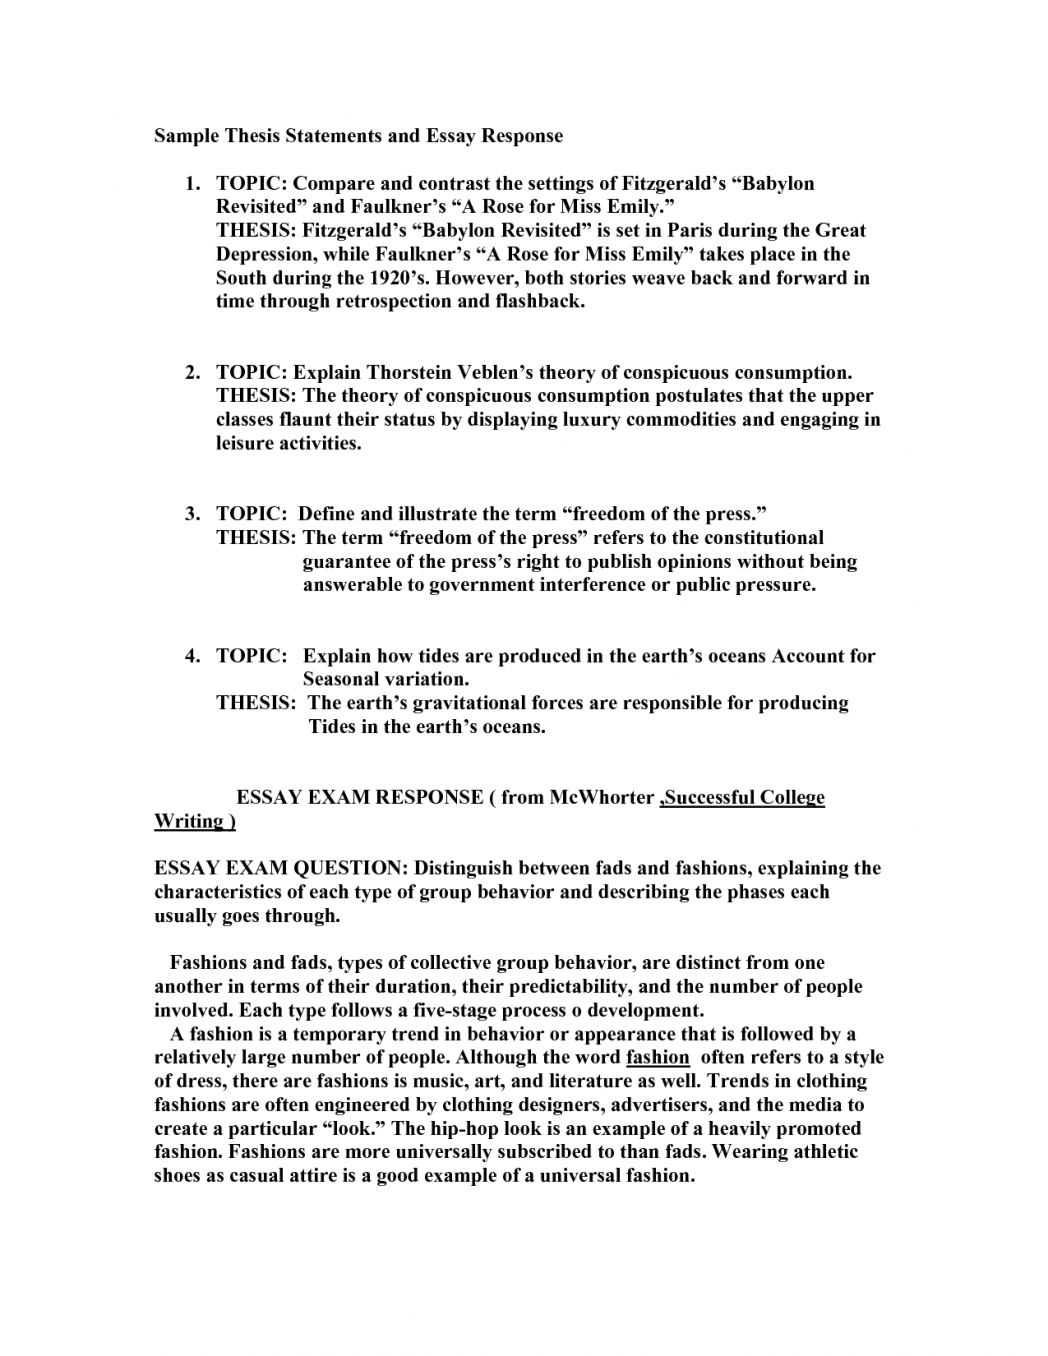 015 What Is Thesis Statement In An Essay Example Of How To Write For About Yourself 6na1p Argumentative Step By Expository High School Ppt Informative Analysis Pdf Fascinating A Examples Narrative Full